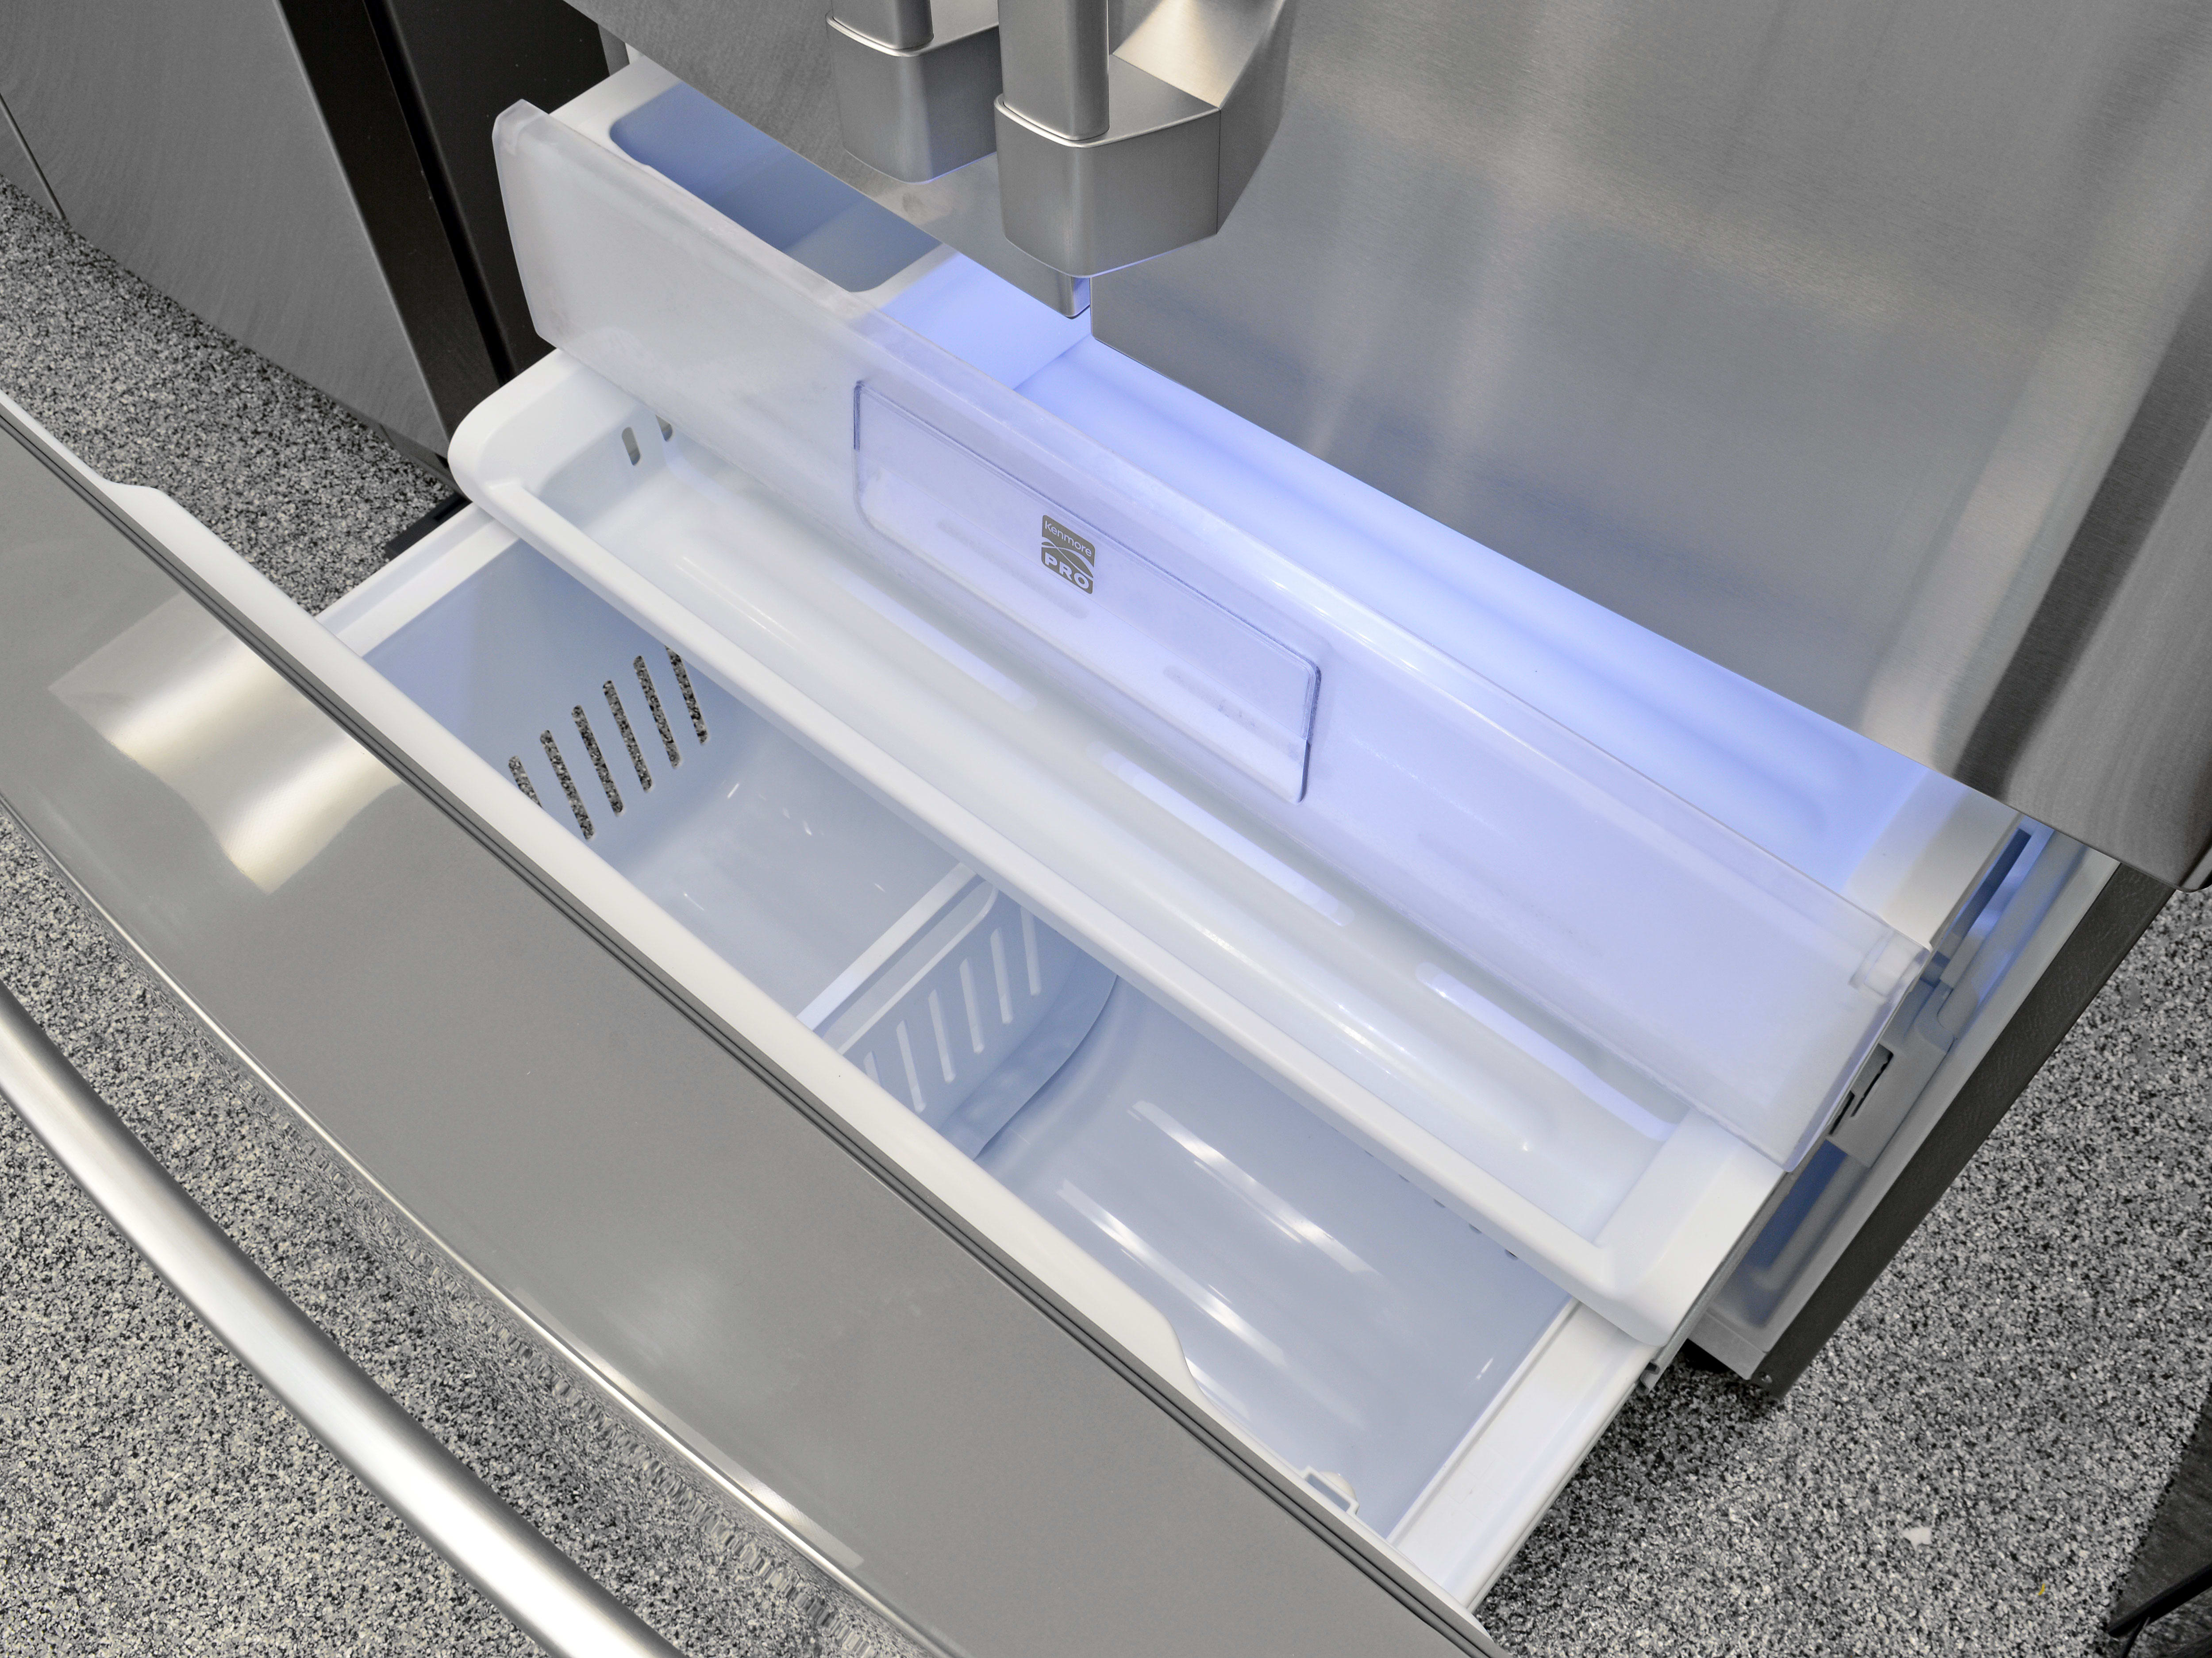 The Kenmore Pro 79993's pullout freezer feels a bit shallow, but that's true for all counter depth French door models.